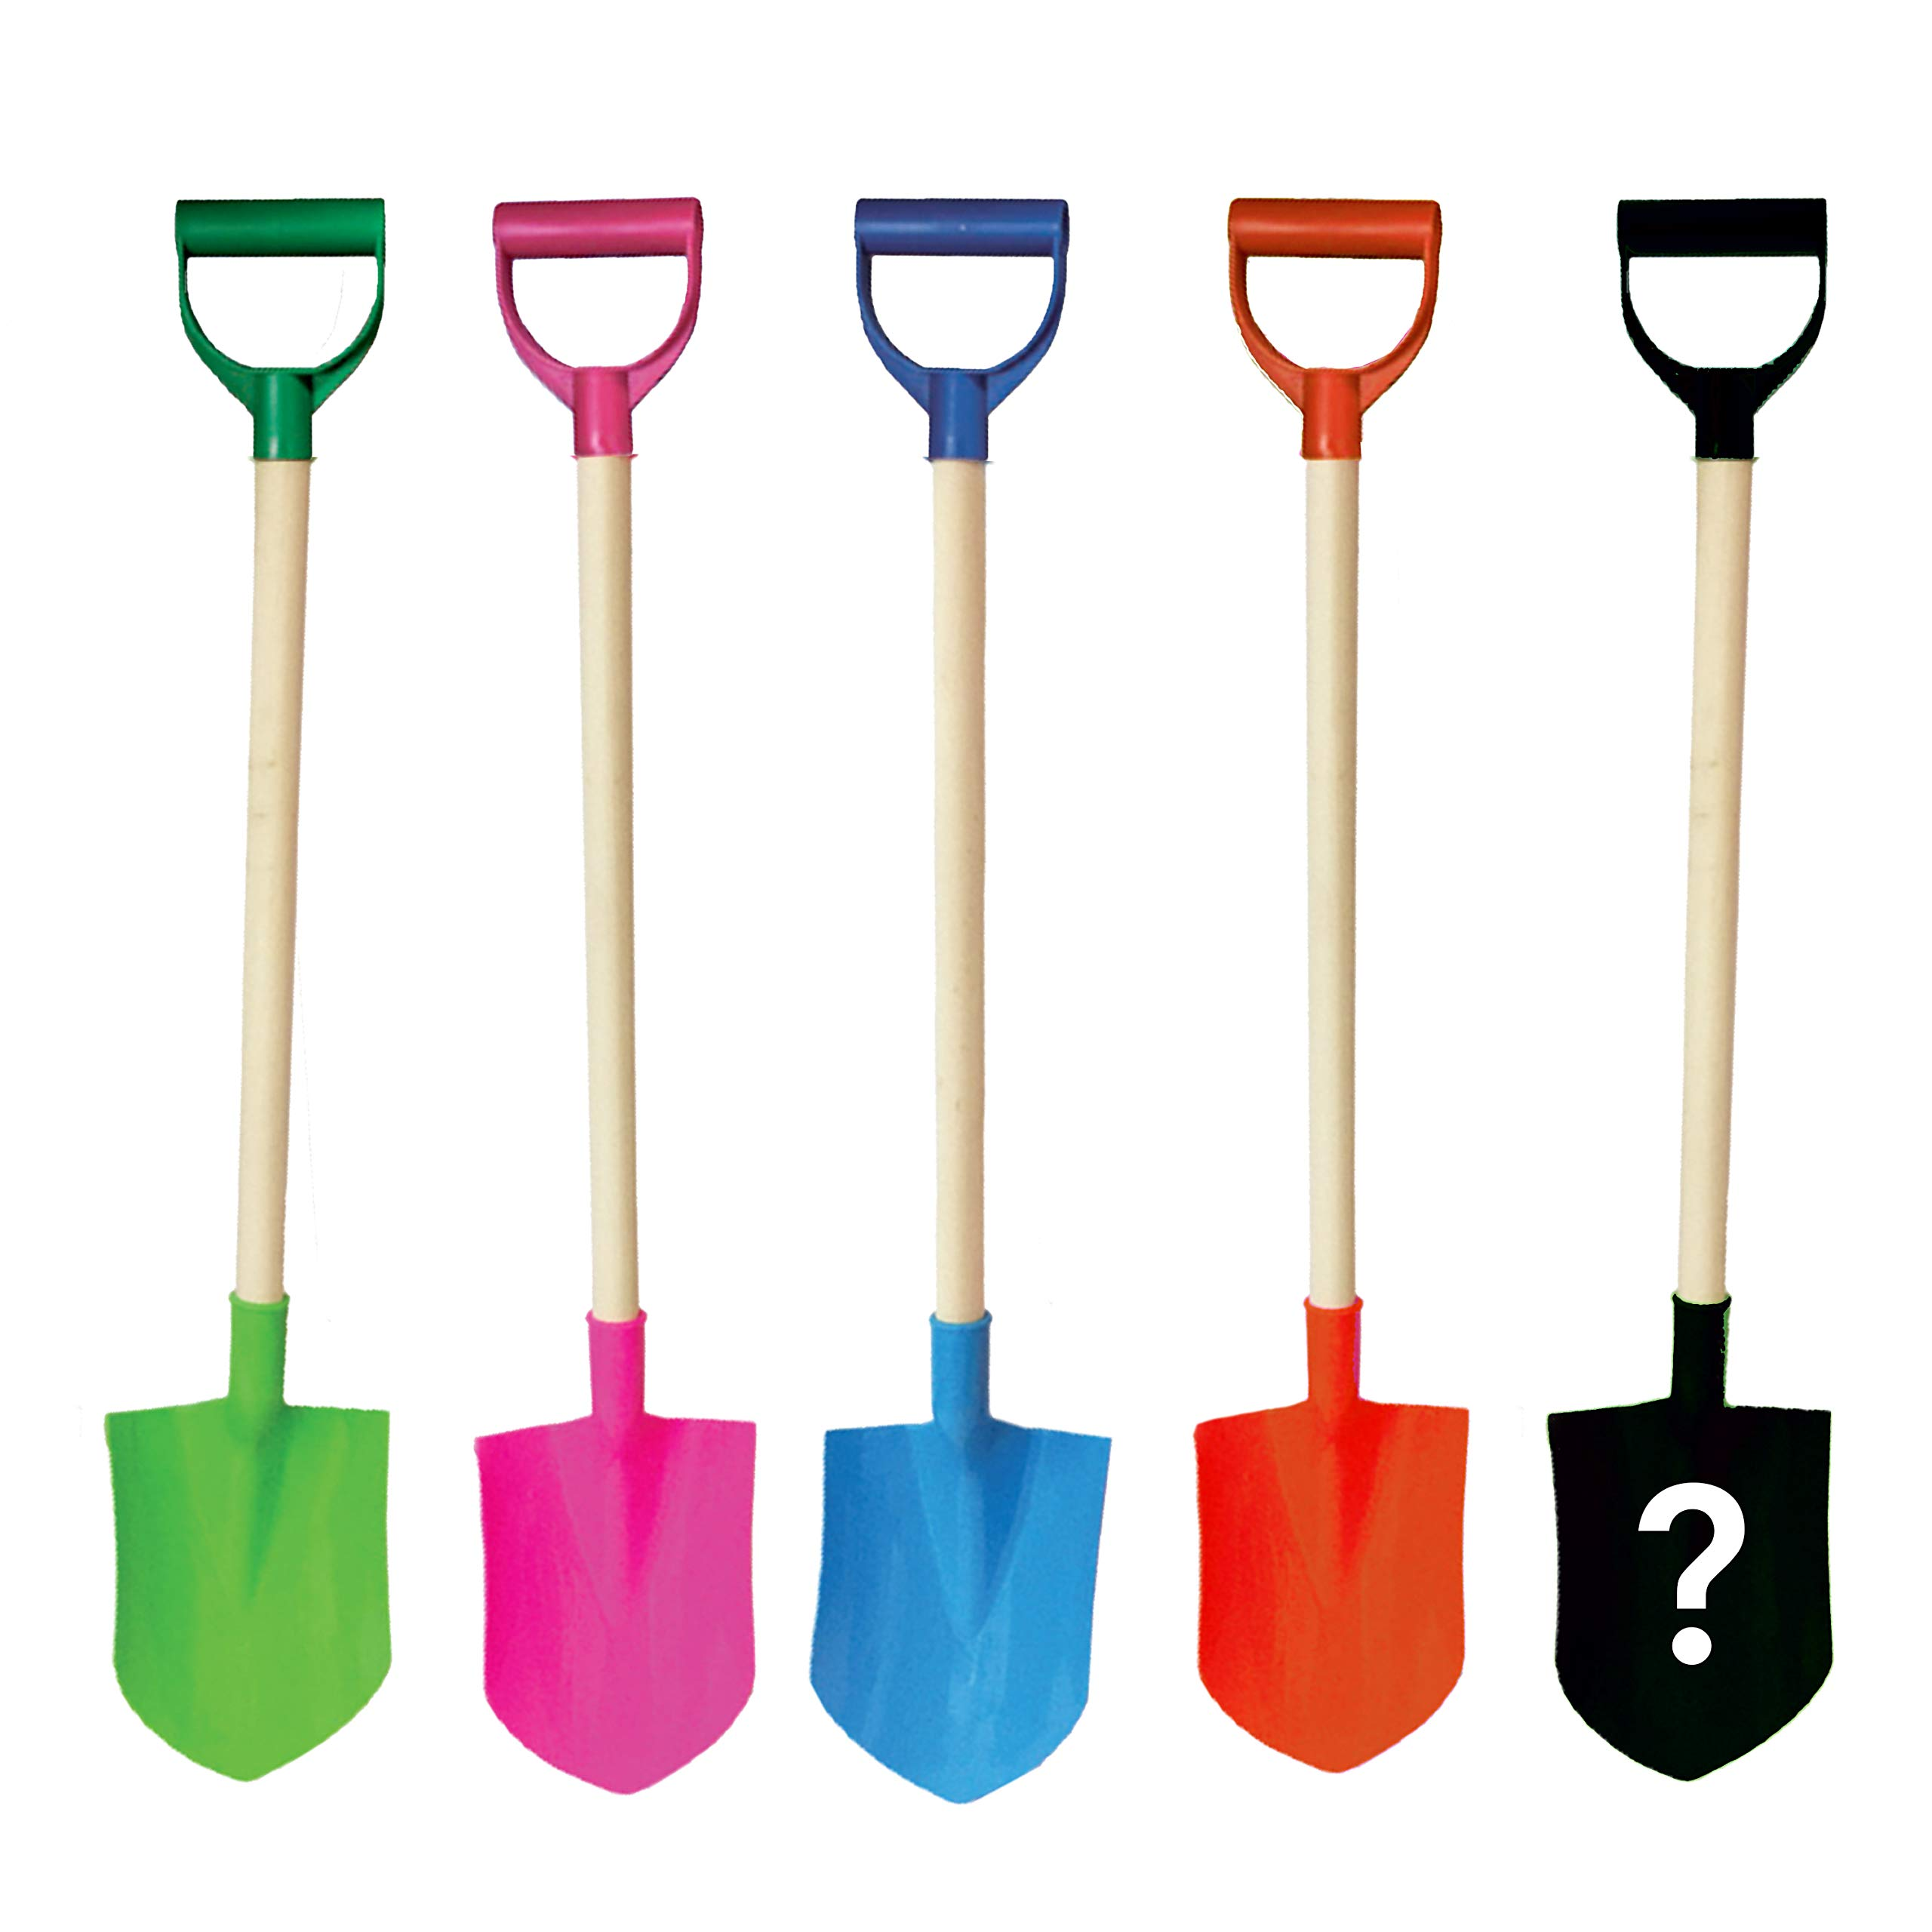 Beachgoer Bulk Pack of 5 32-Inch Plastic Wood Large Heavy Duty Beach Kids Sand Shovels with Reinforced Plastic Handle - 5 Color Pack Blue Pink Green Sand Toys by Beachgoer